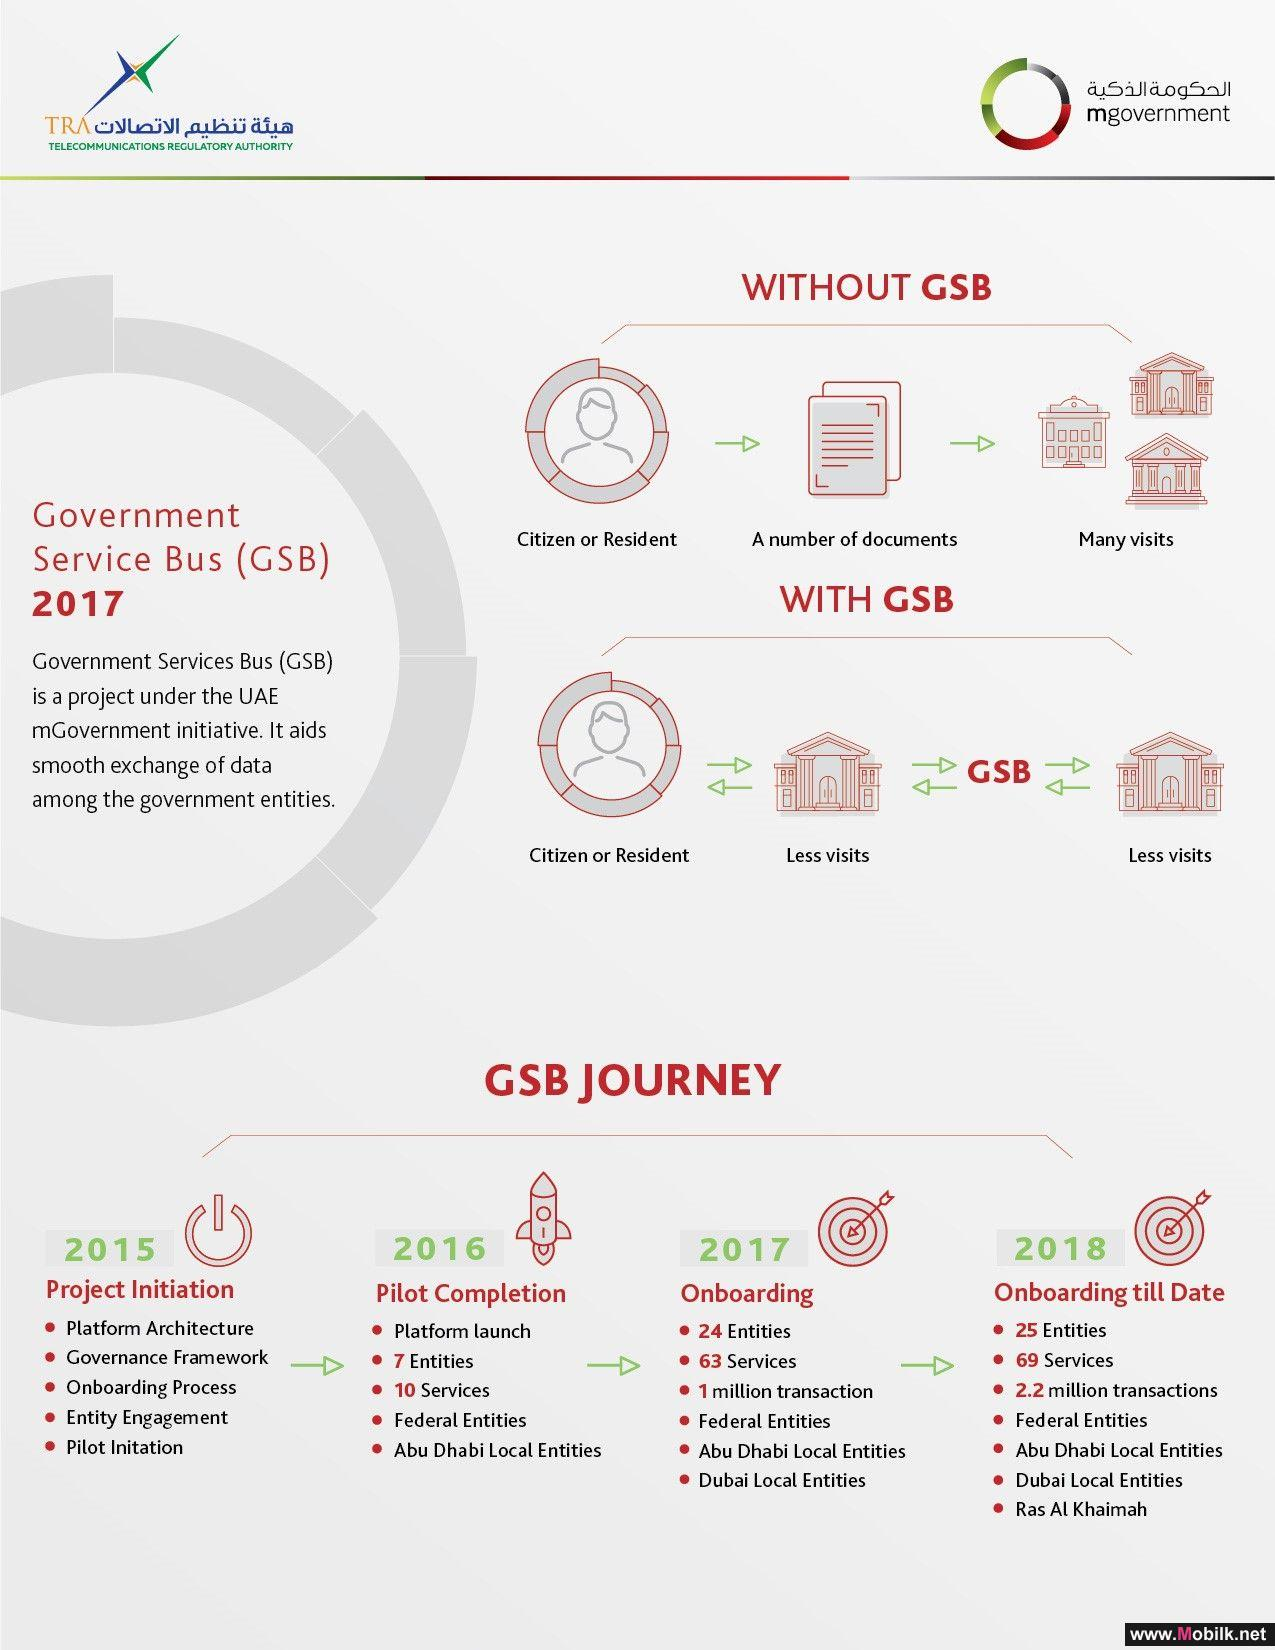 GSB interconnects 66 Smart Services of 23 Government Entities